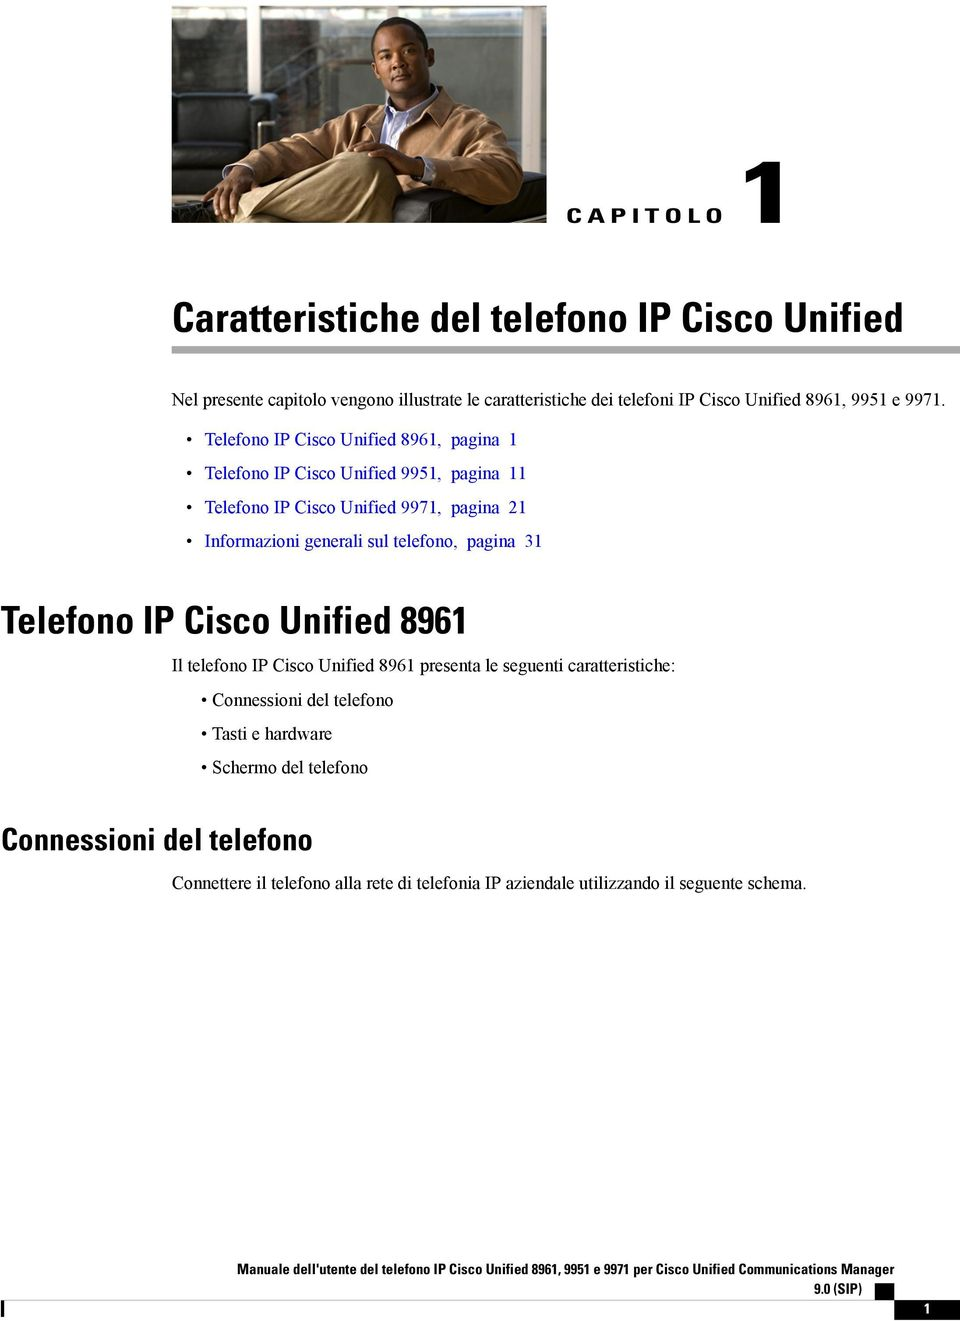 Telefono IP Cisco Unified 8961, pagina 1 Telefono IP Cisco Unified 9951, pagina 11 Telefono IP Cisco Unified 9971, pagina 21 Informazioni generali sul